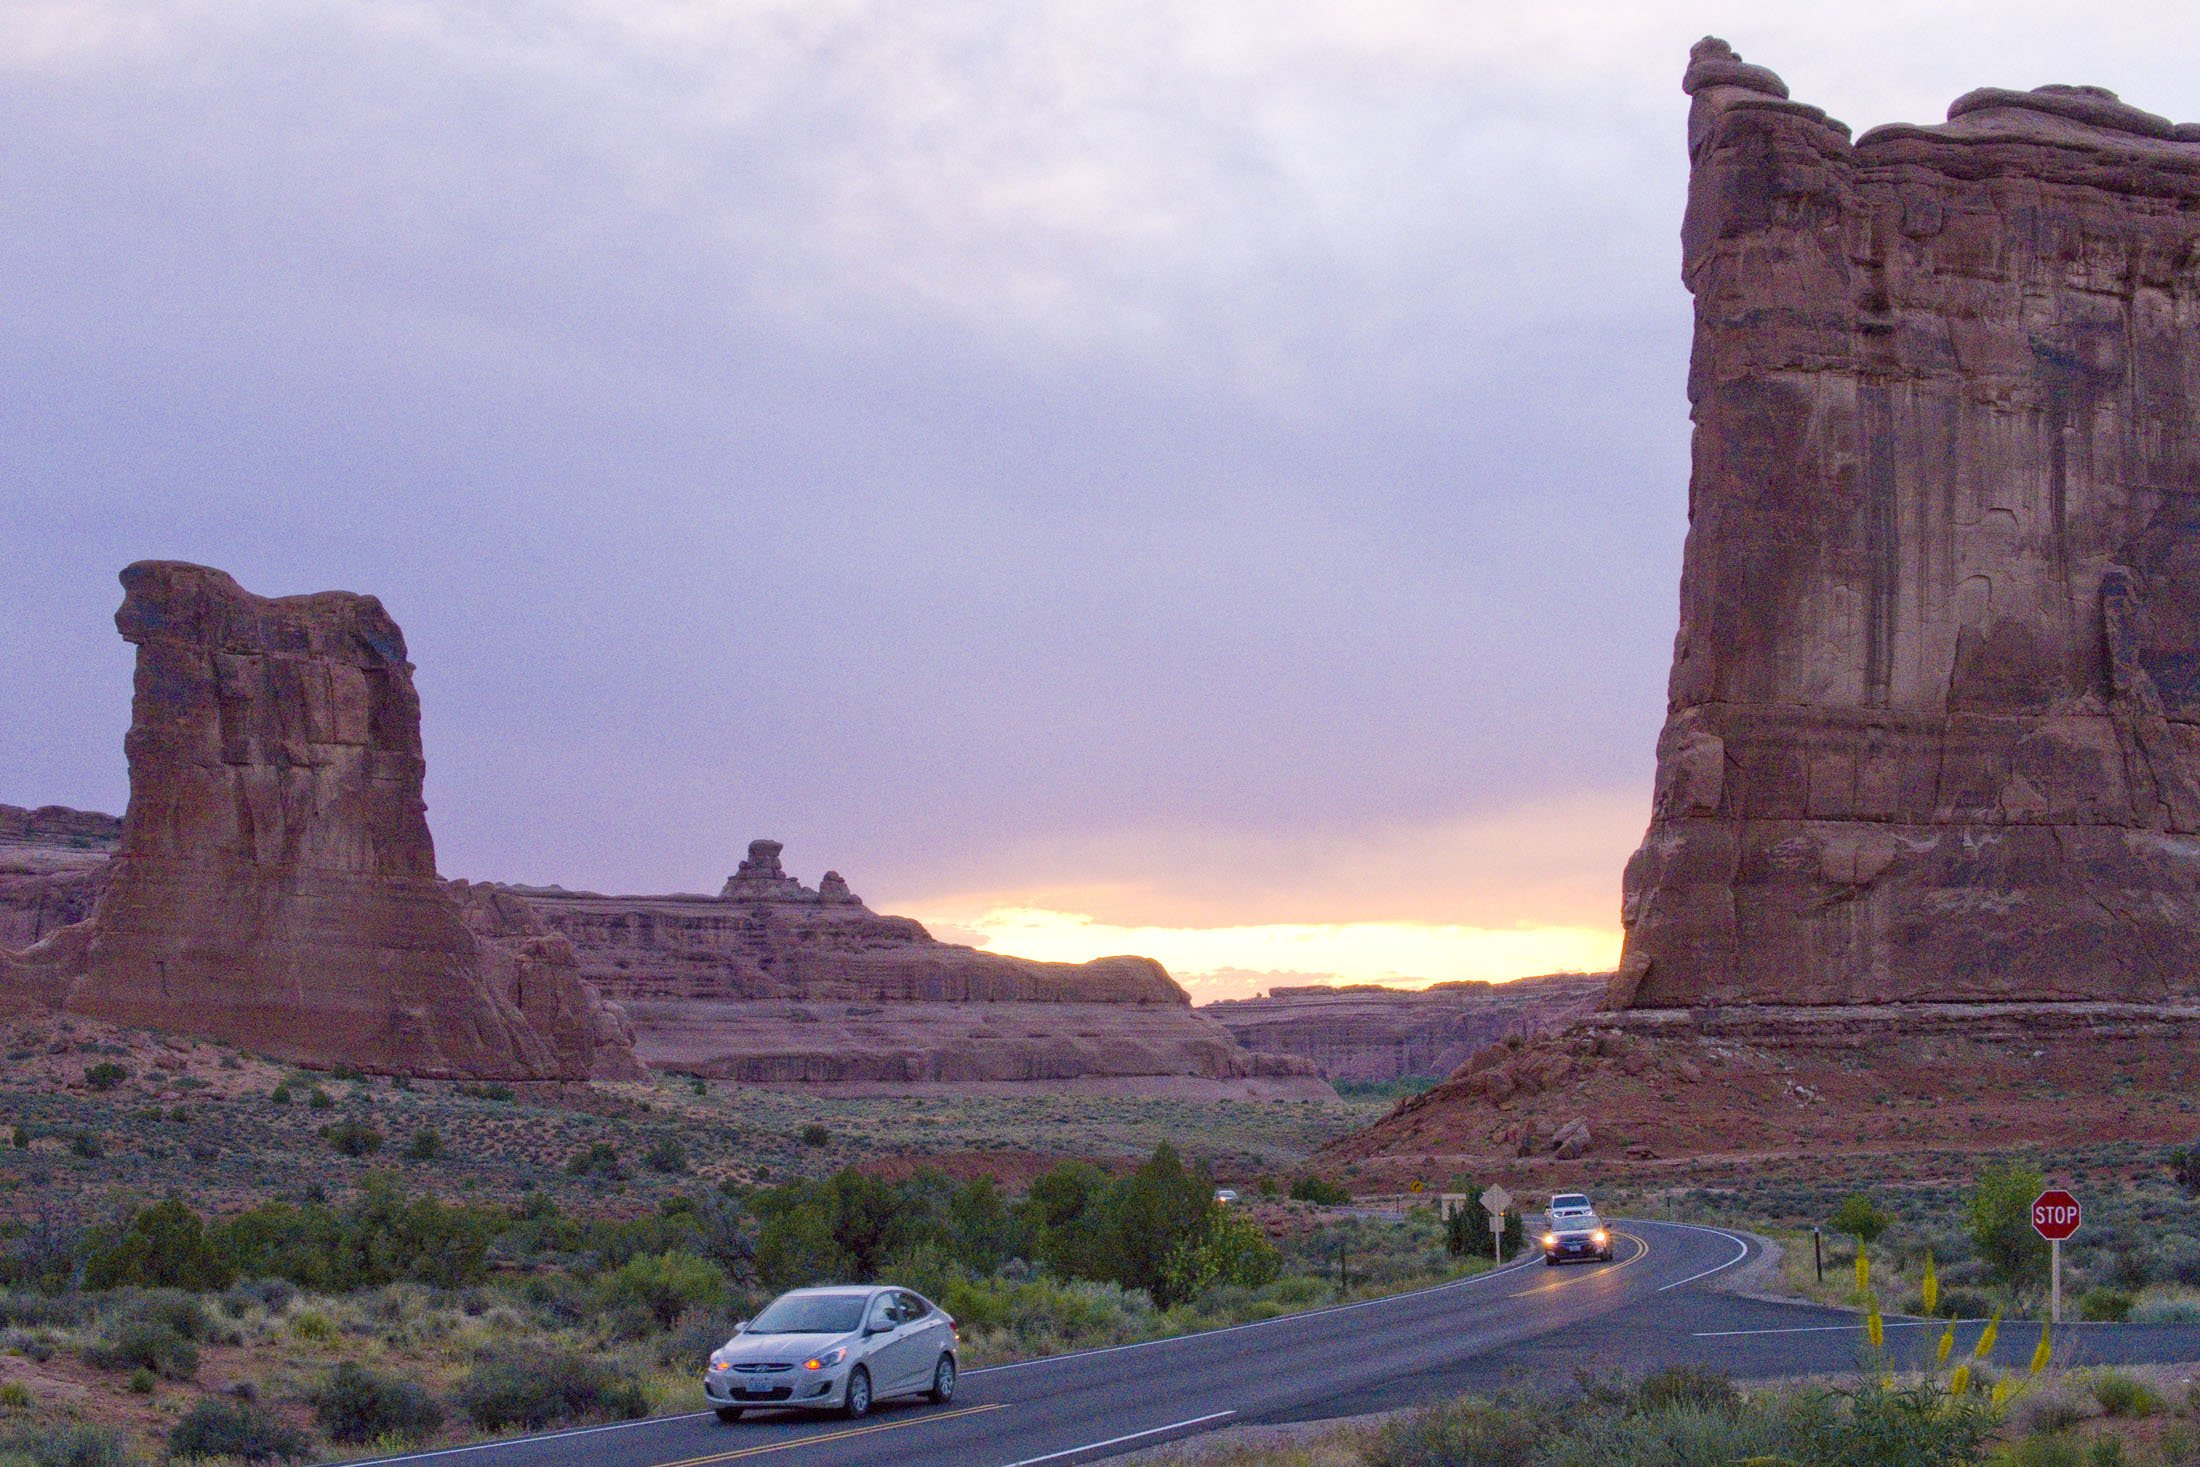 Sunset is prime viewing at Arches National Park in Utah. (Craig Davis/Craigslegztravels.com)